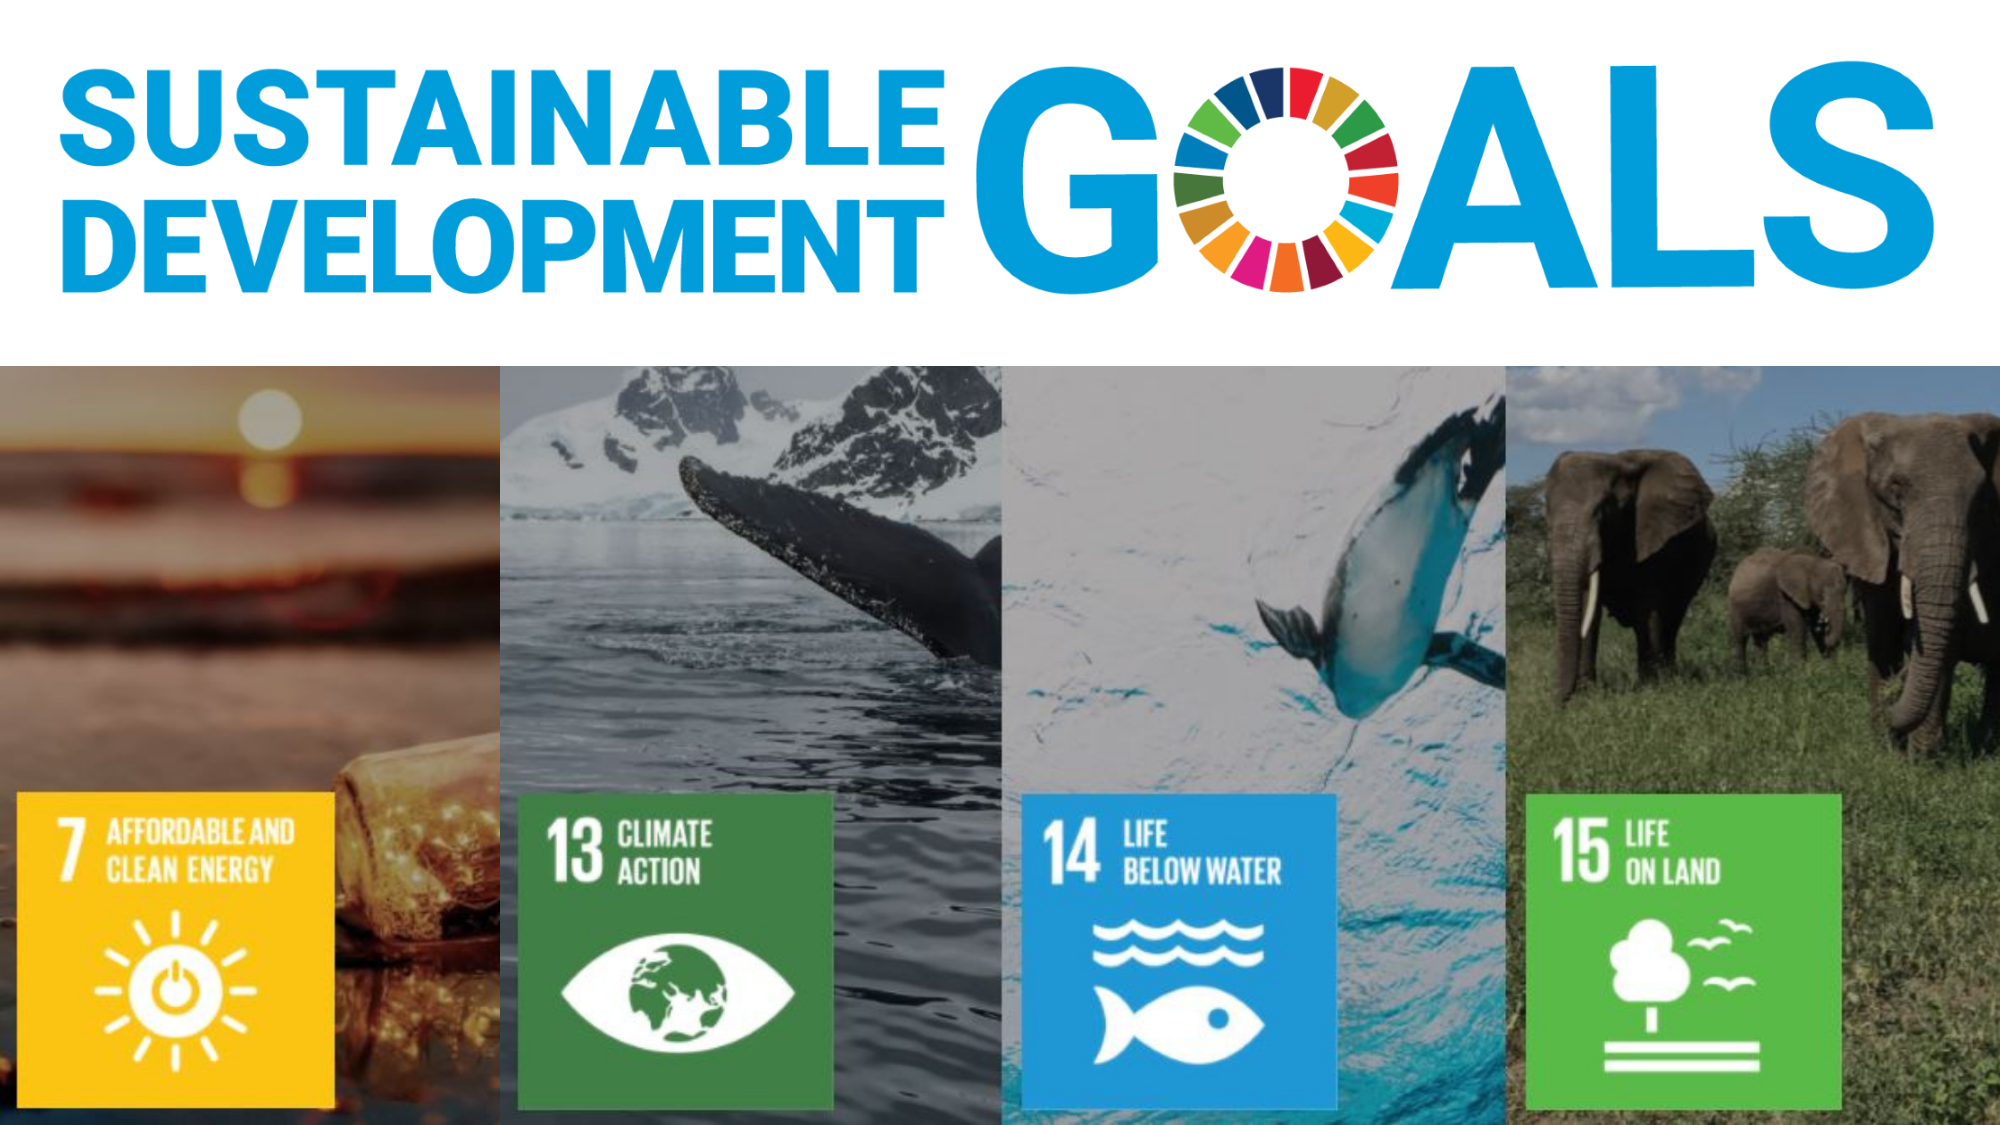 RJS Waste Management's contribution to the Sustainable Development Goals